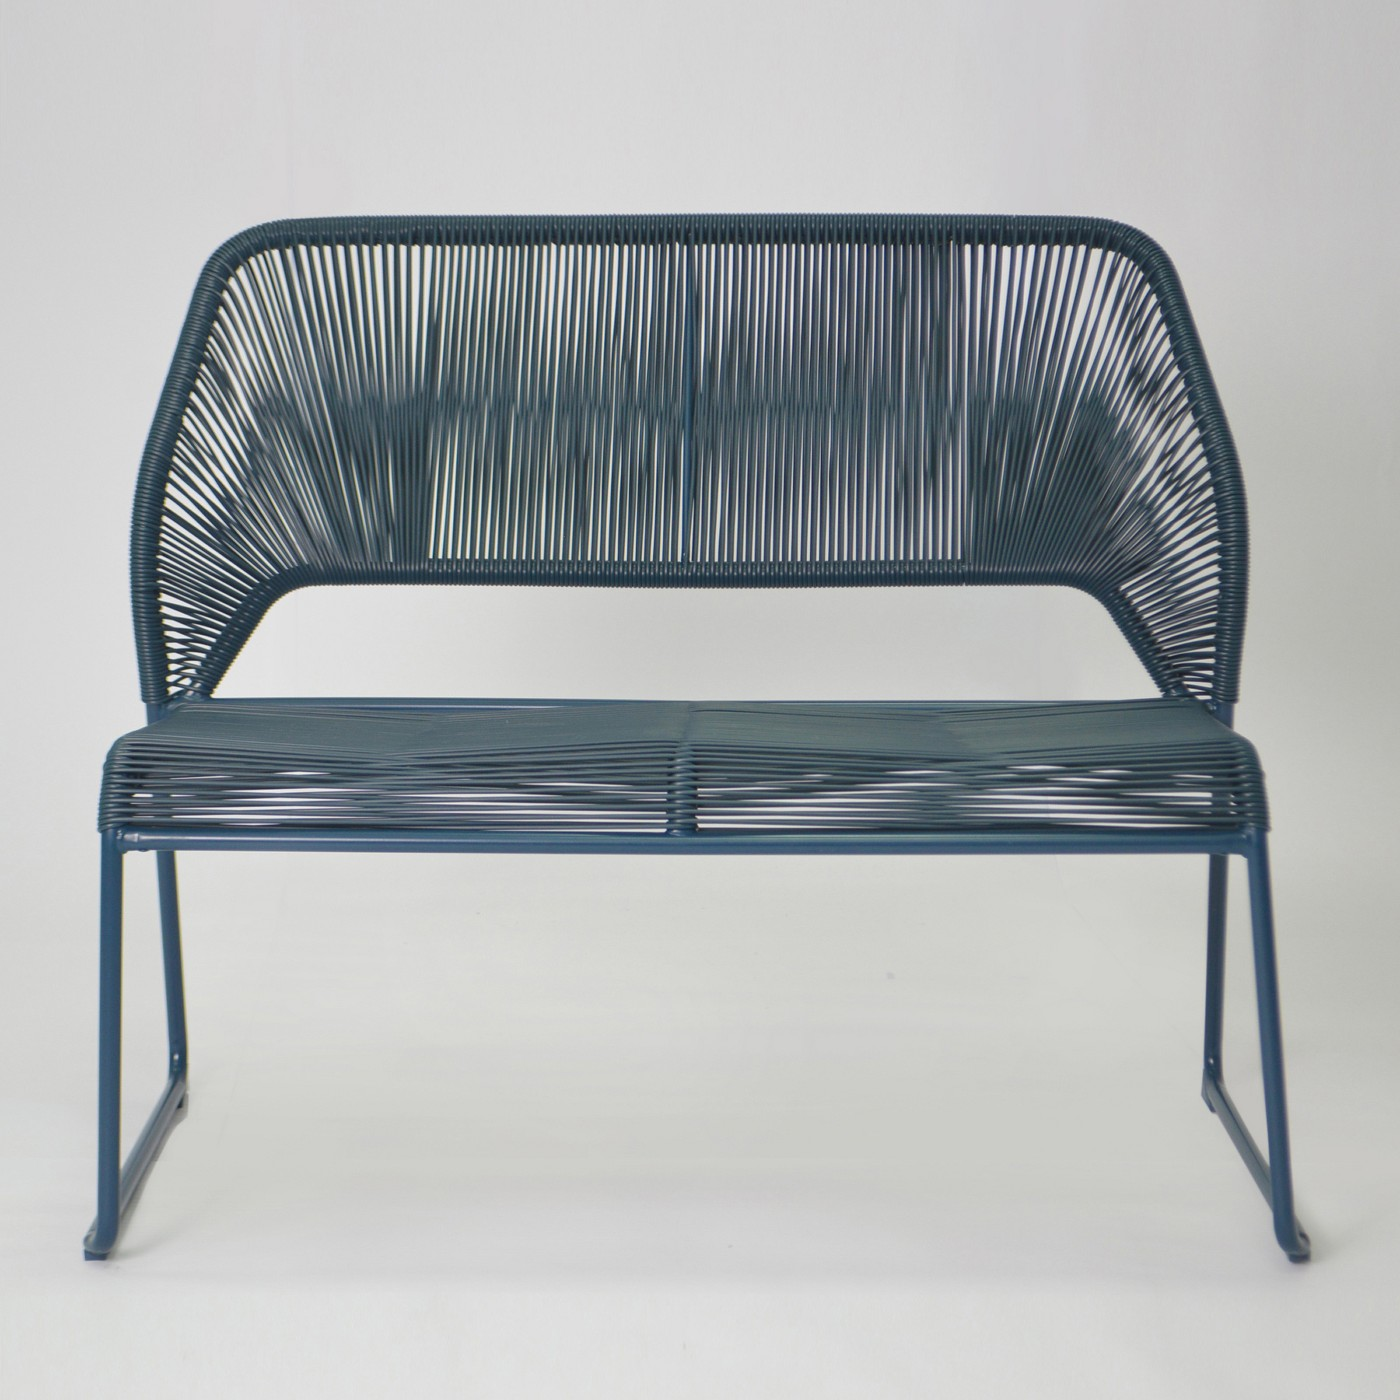 Fisher Bench from Target